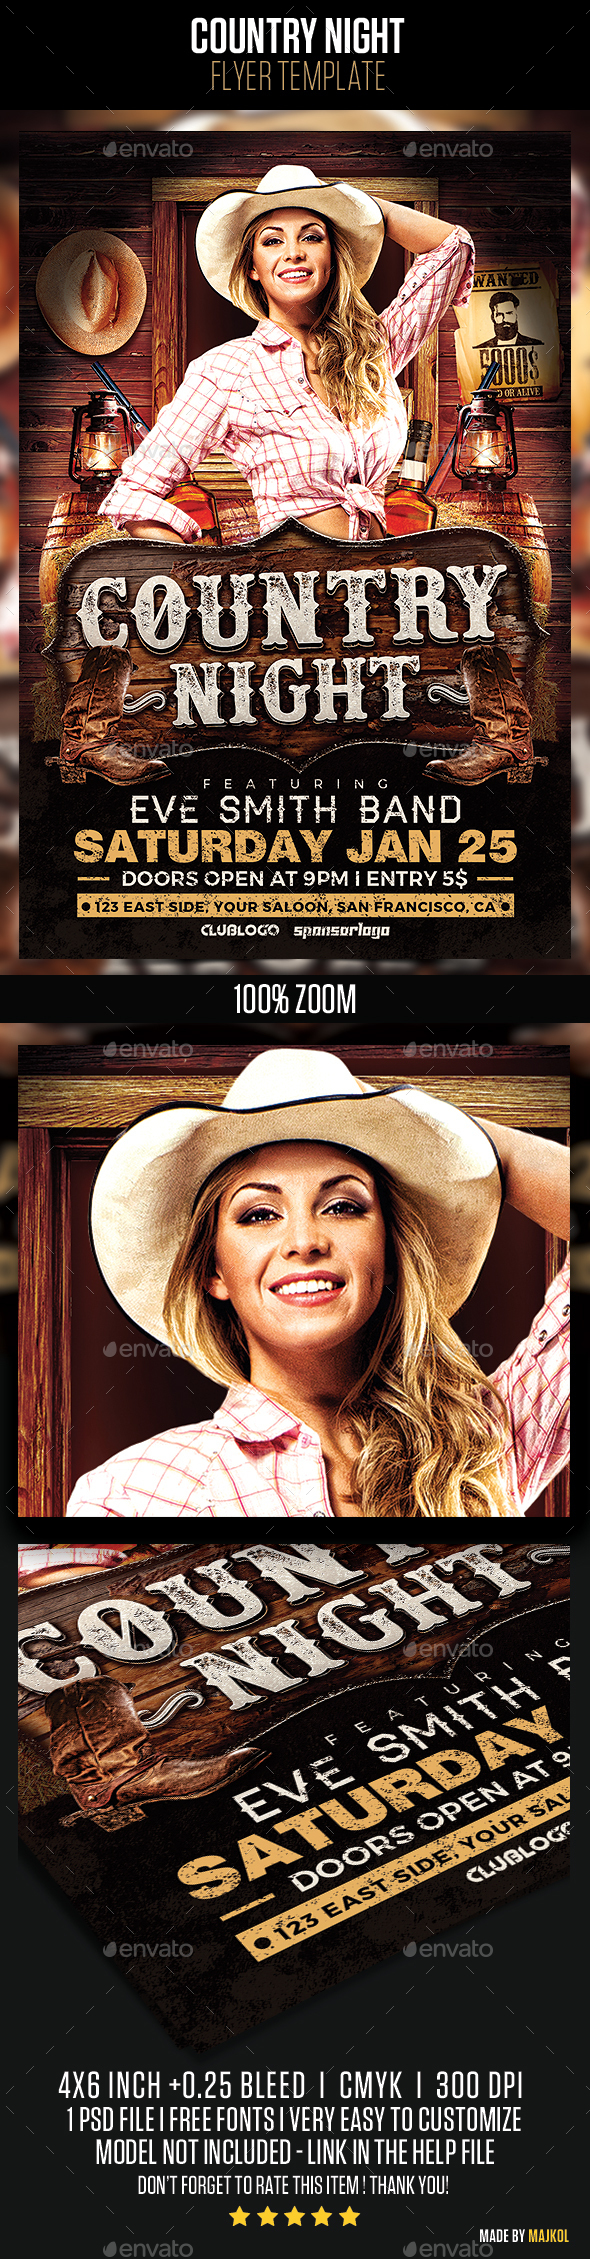 Country Night Flyer Template v2 - Clubs & Parties Events